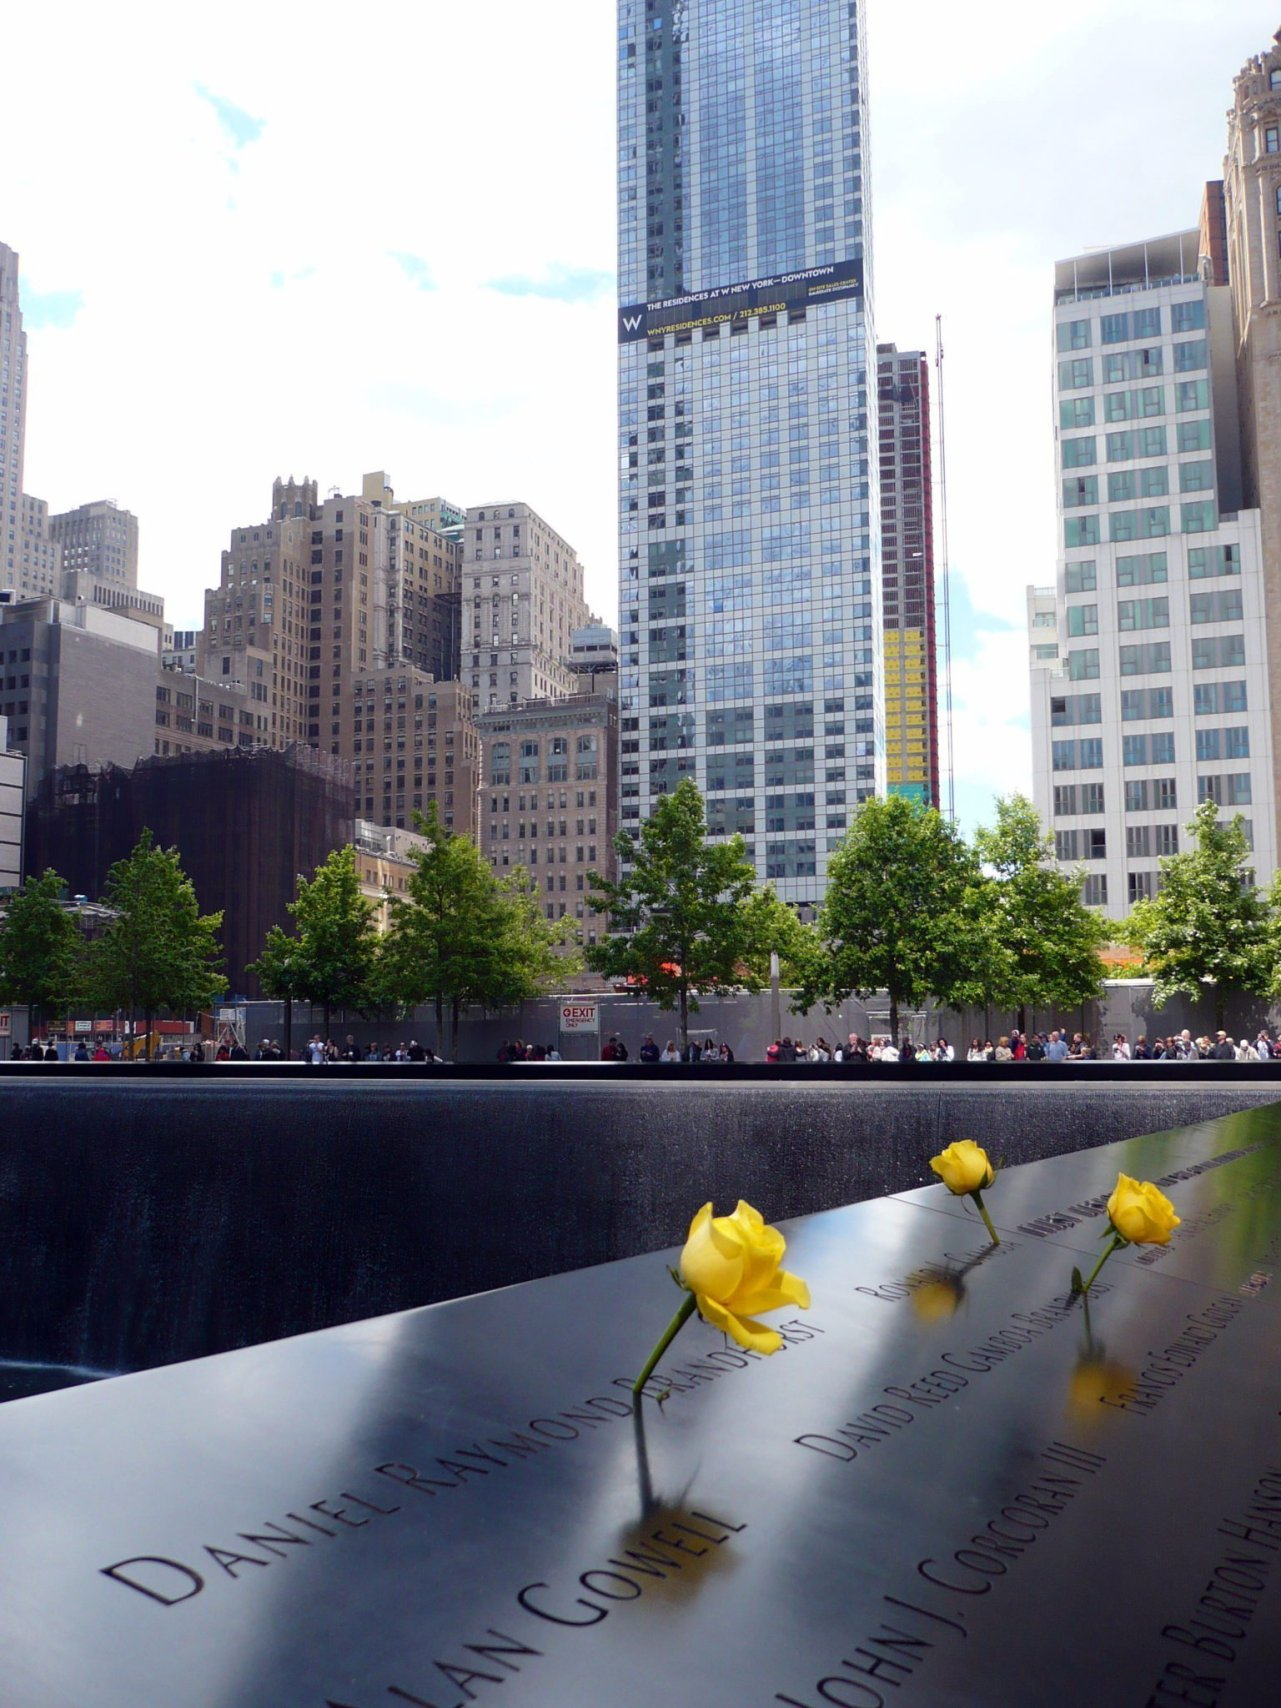 Ground Zero, New York.